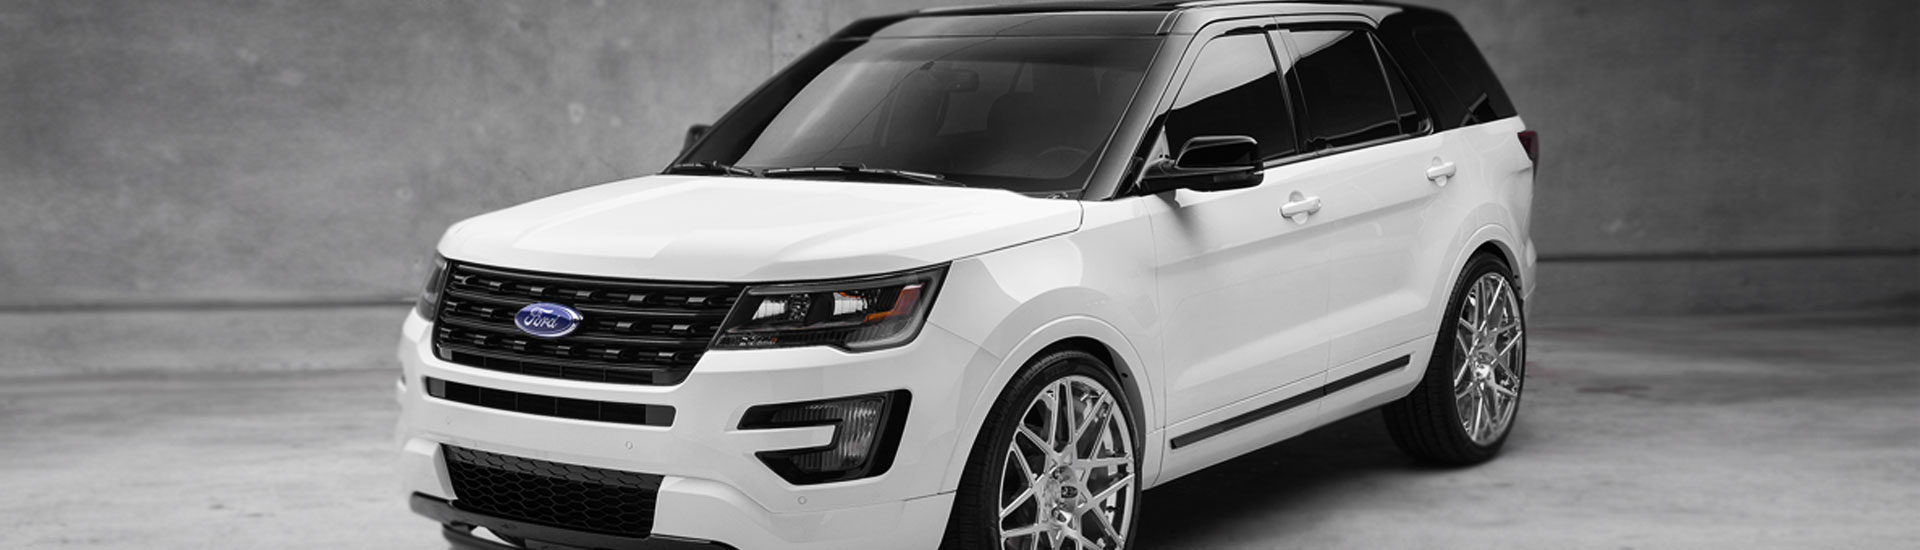 Ford Explorer Window Tint Kit Diy Precut Ford Explorer